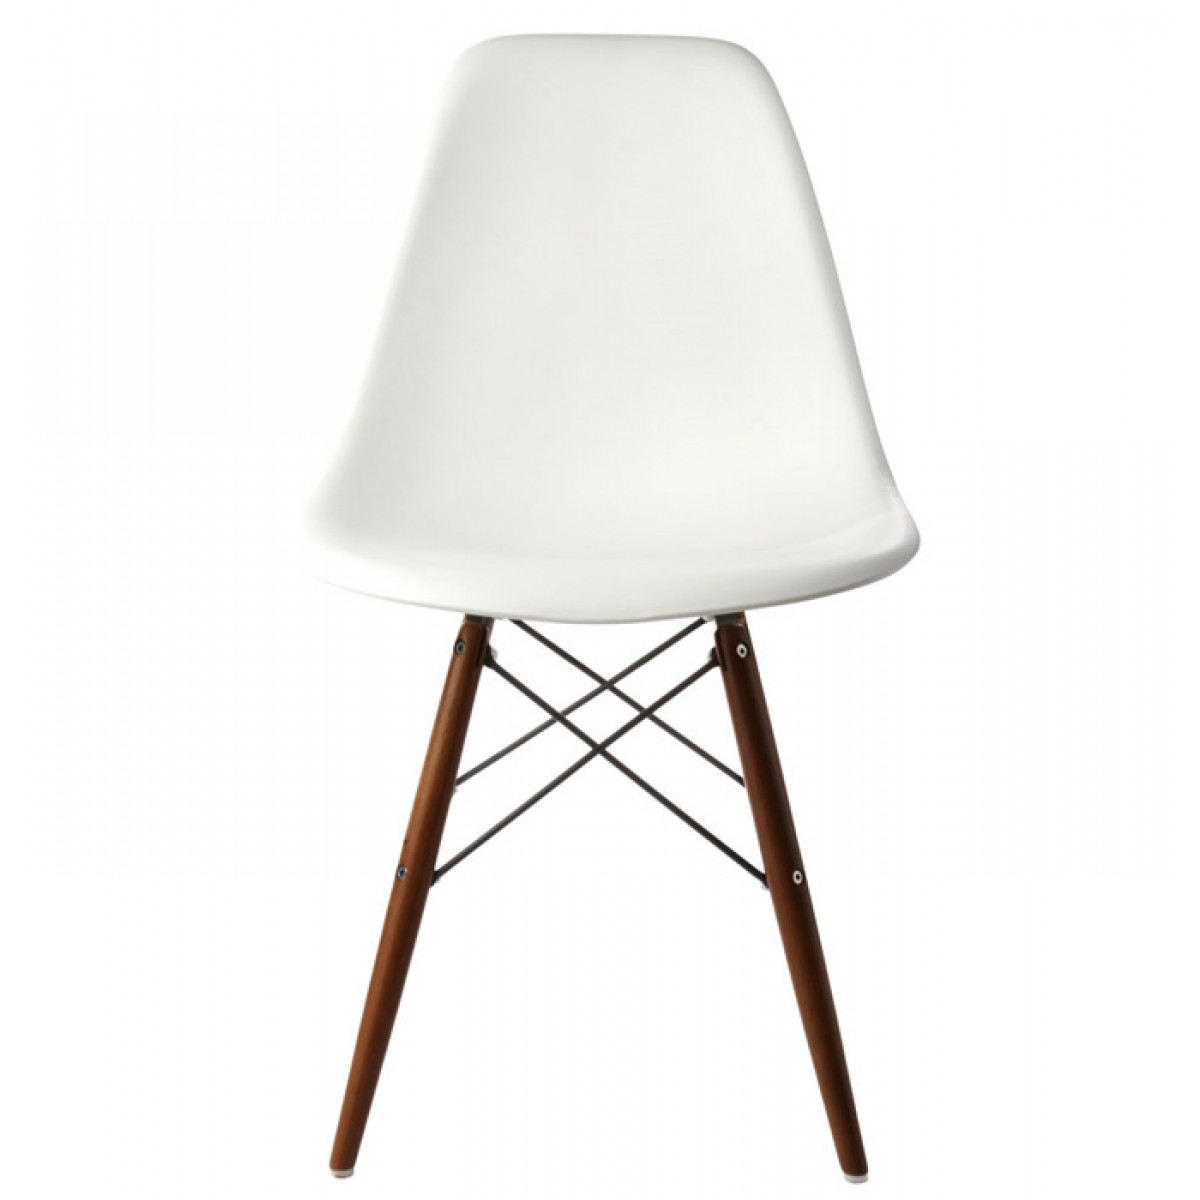 Set of 4 eames style dsw molded white plastic dining shell for Eames plastic side chair dsw replica